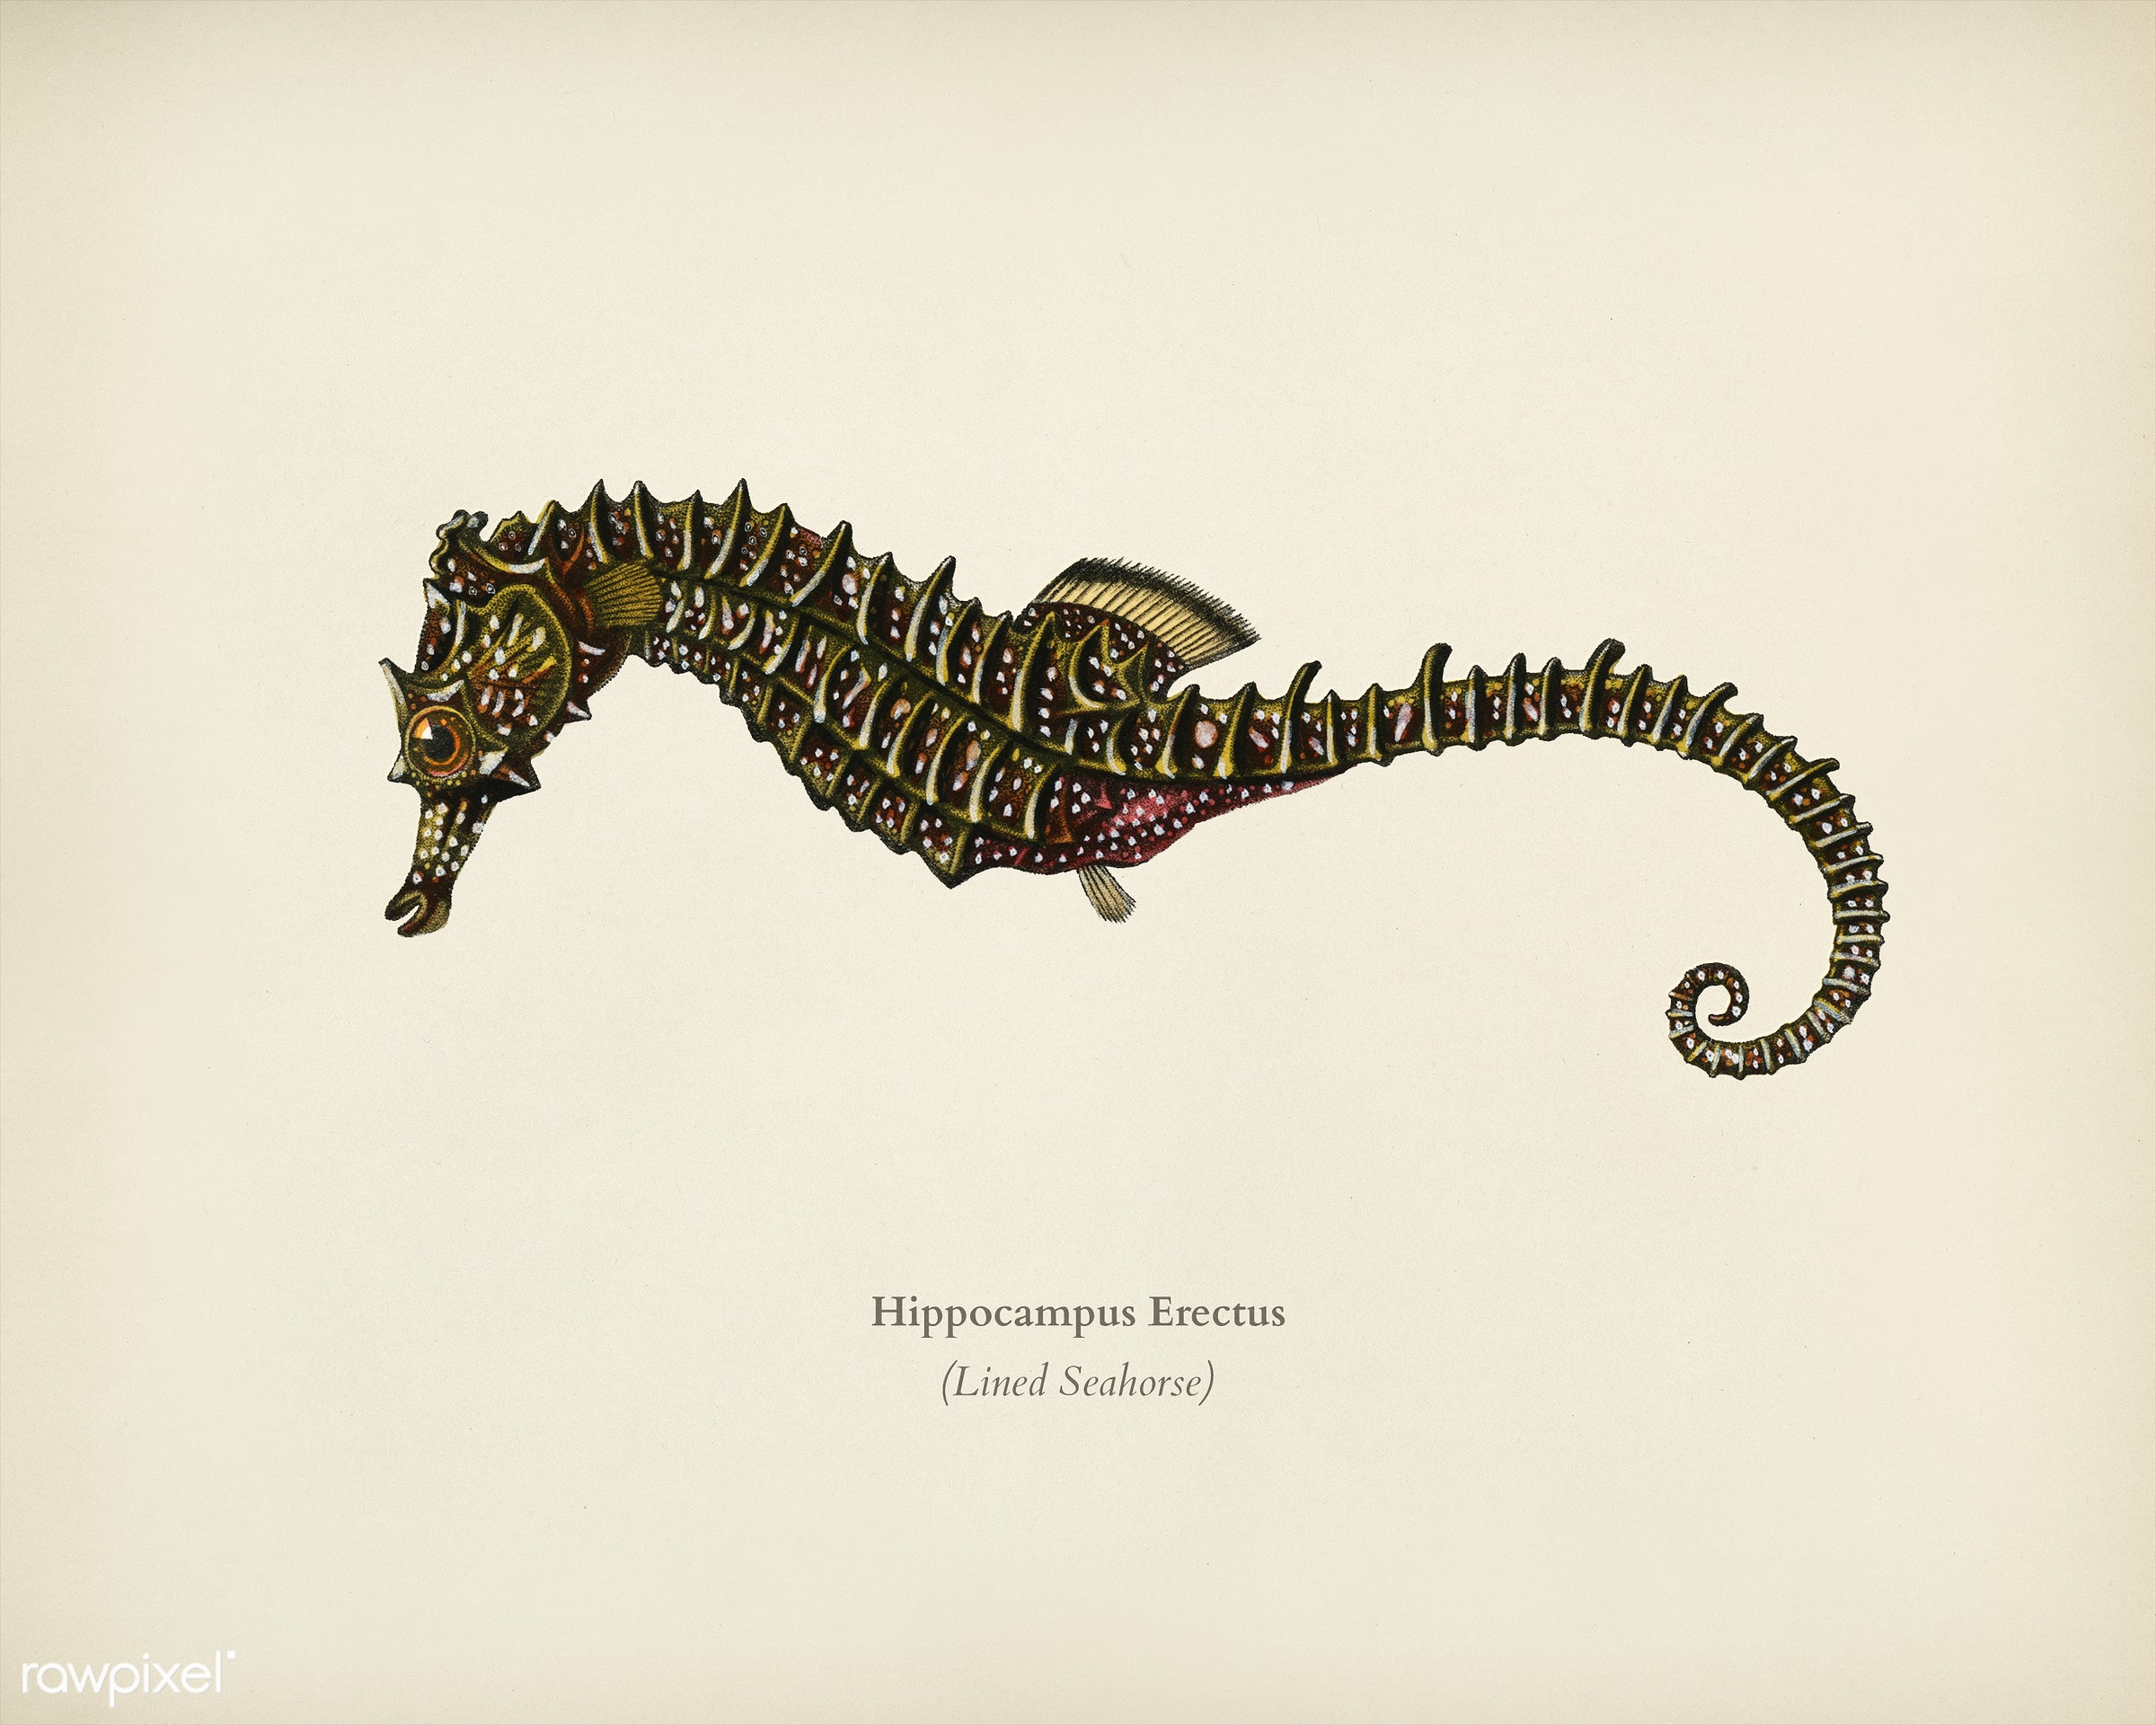 Lined seahorse (Hippocampus Erectus) illustrated by Charles Dessalines D' Orbigny (1806-1876). Digitally enhanced from...